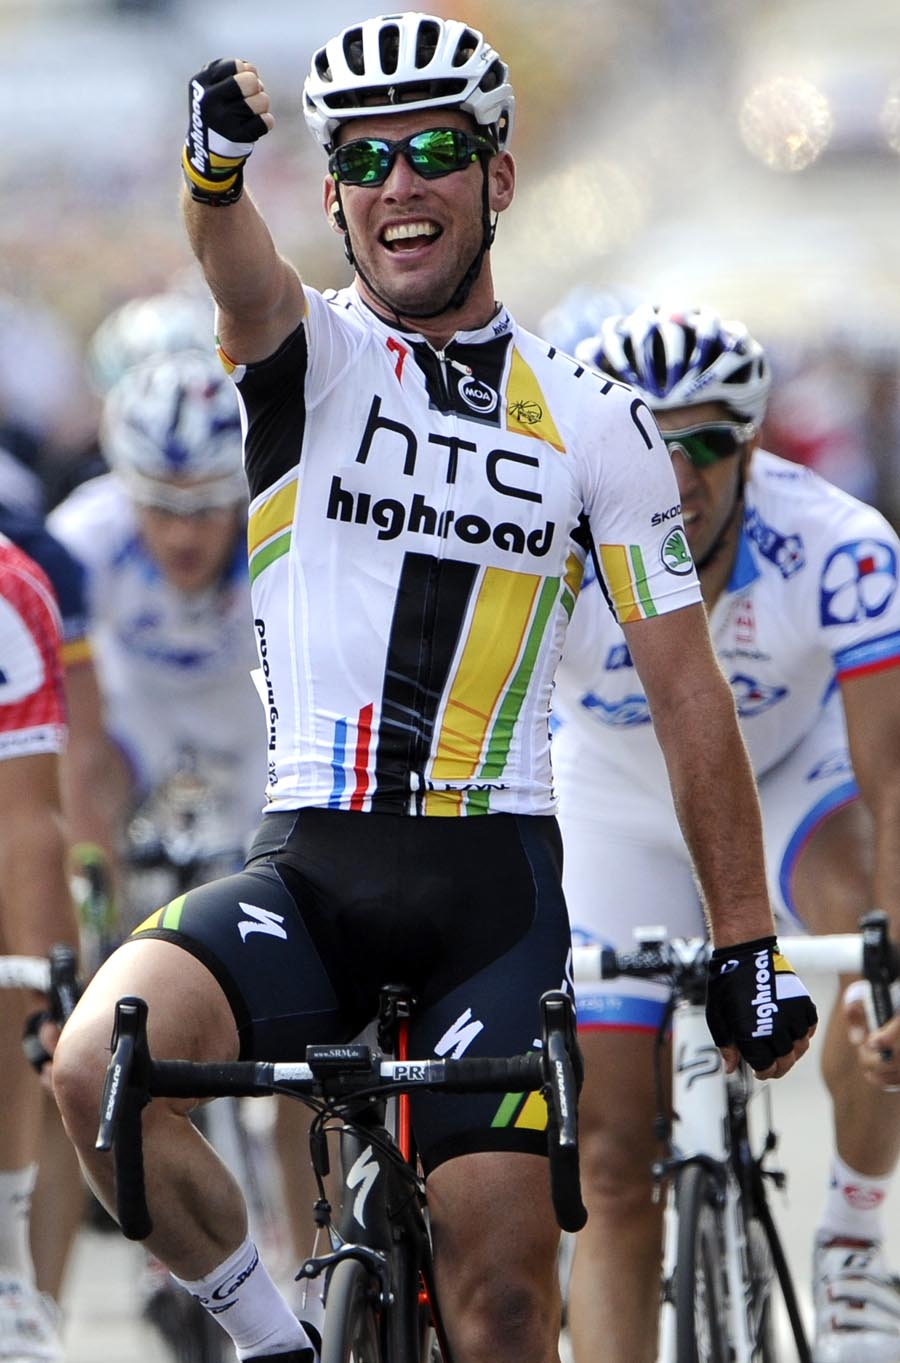 Mark Cavendish wins, Tour de France 2011 stage seven